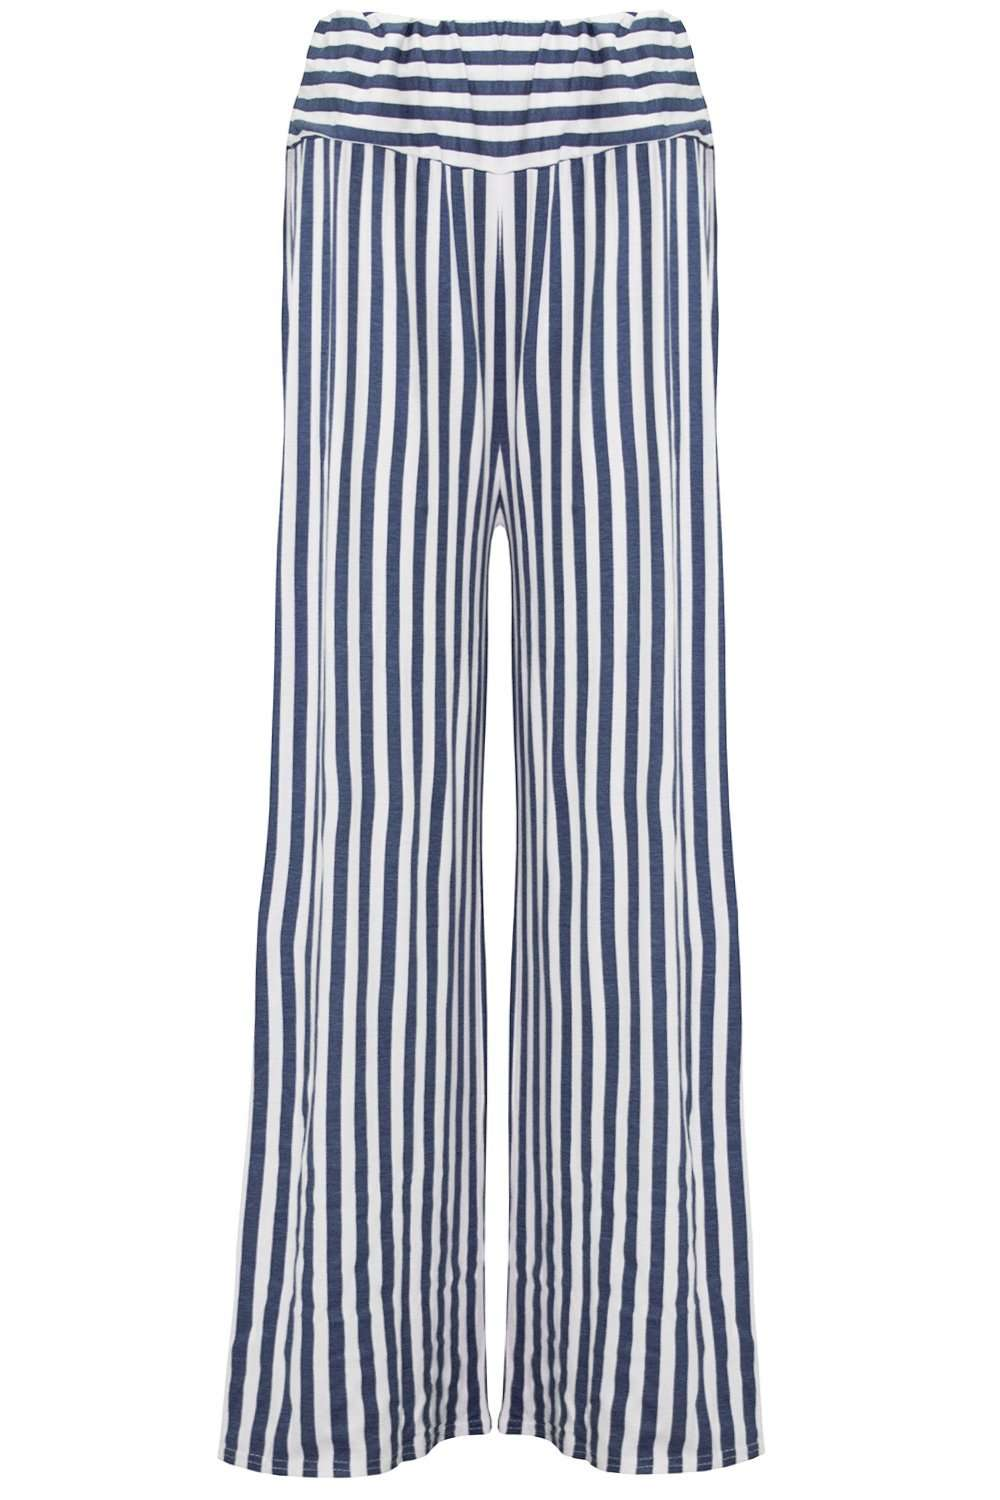 Emily High Waisted Navy Striped Palazzo Pants - bejealous-com